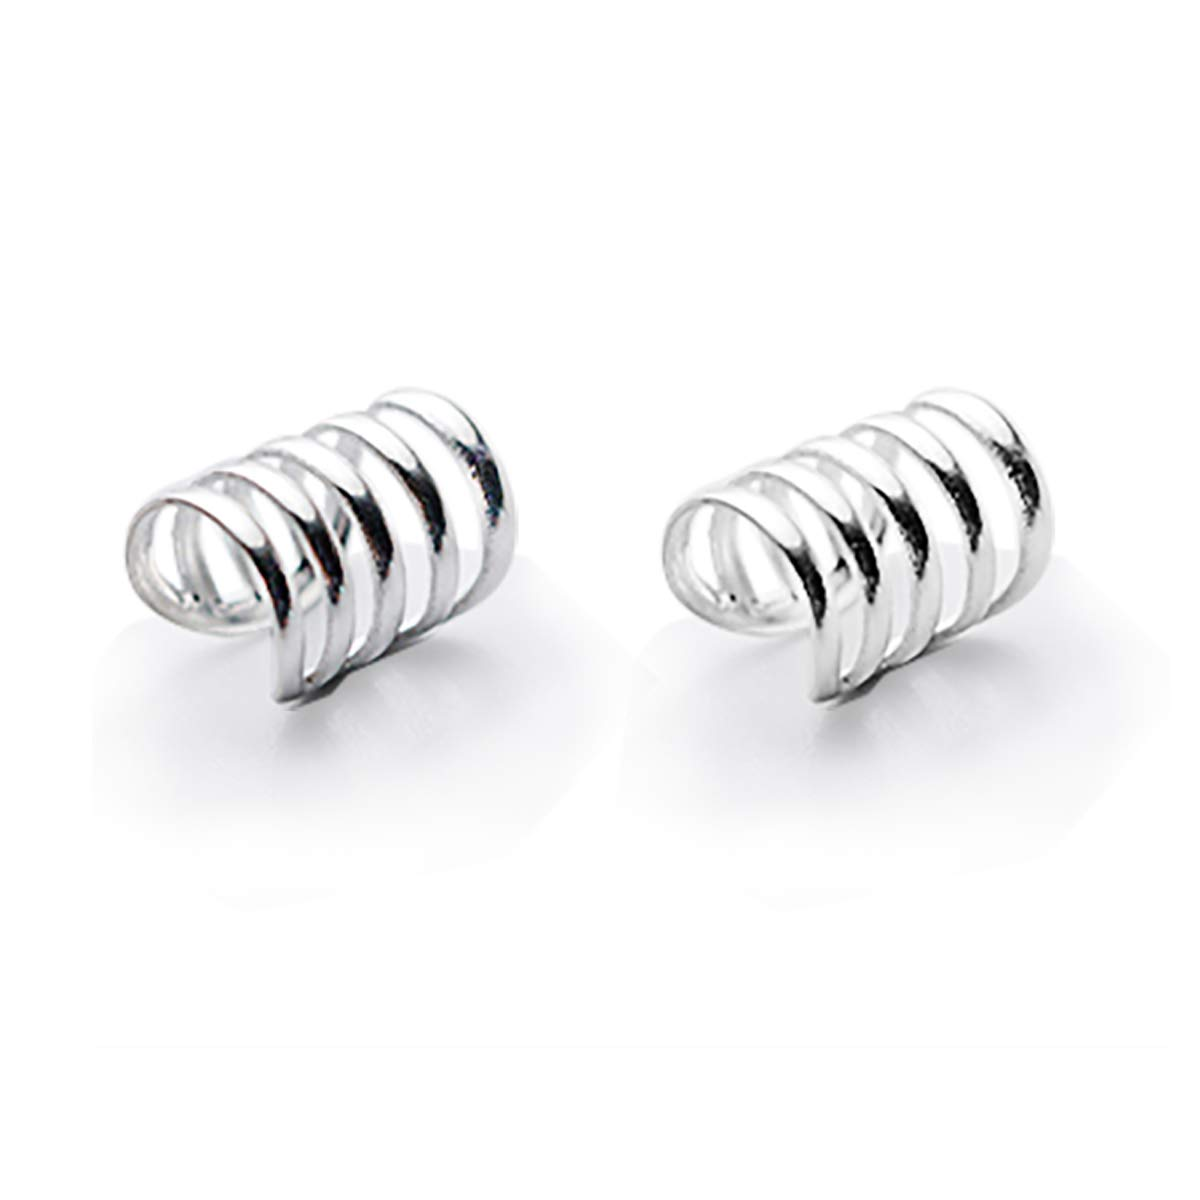 925 Sterling Silver Multi Circles Cuff Earrings for Women Teen Girls Cartilage Earrings FarryDream (Five Circle/pair)